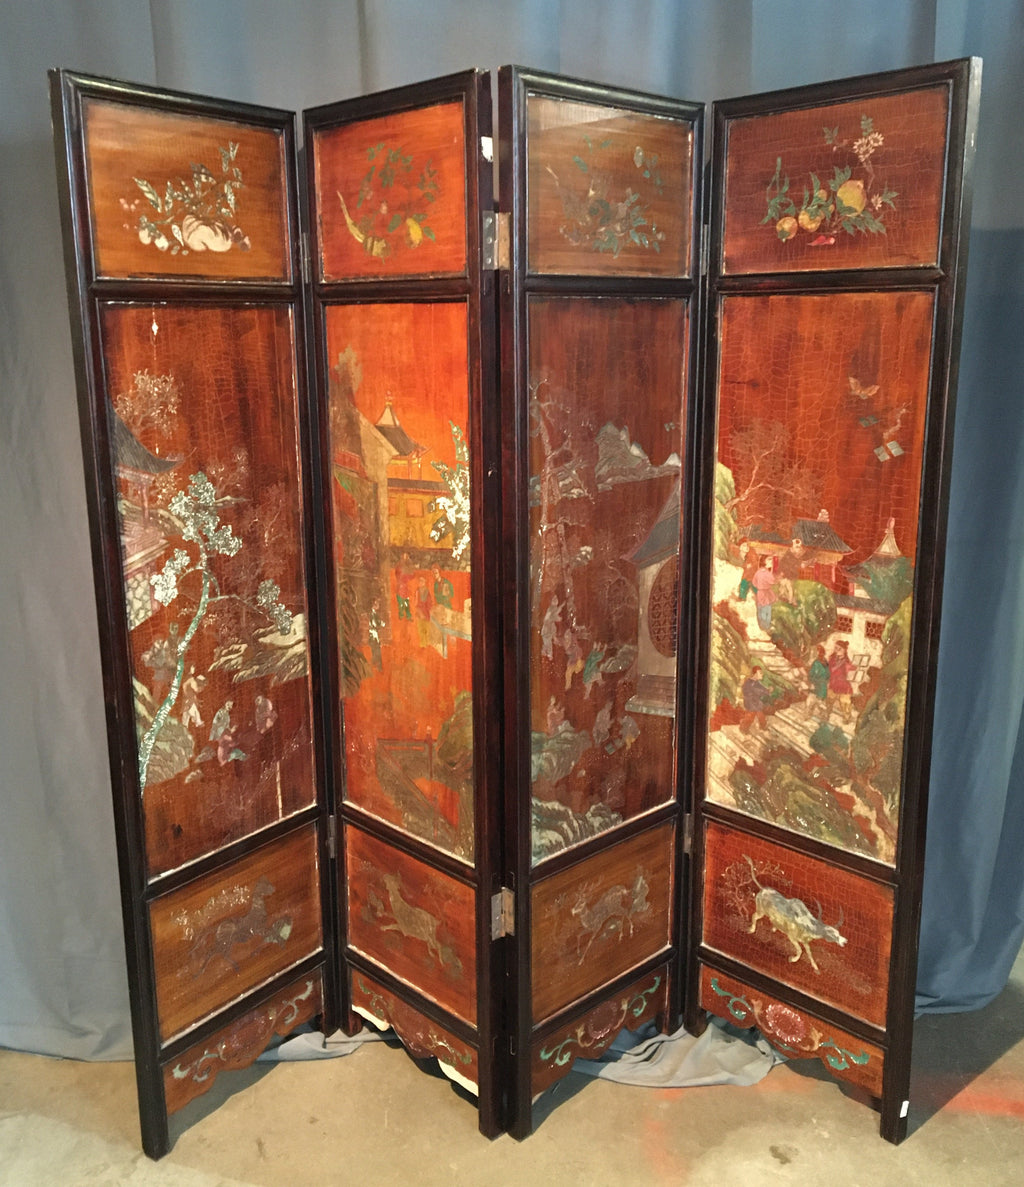 4 PANEL CARVED WOOD SCREEN